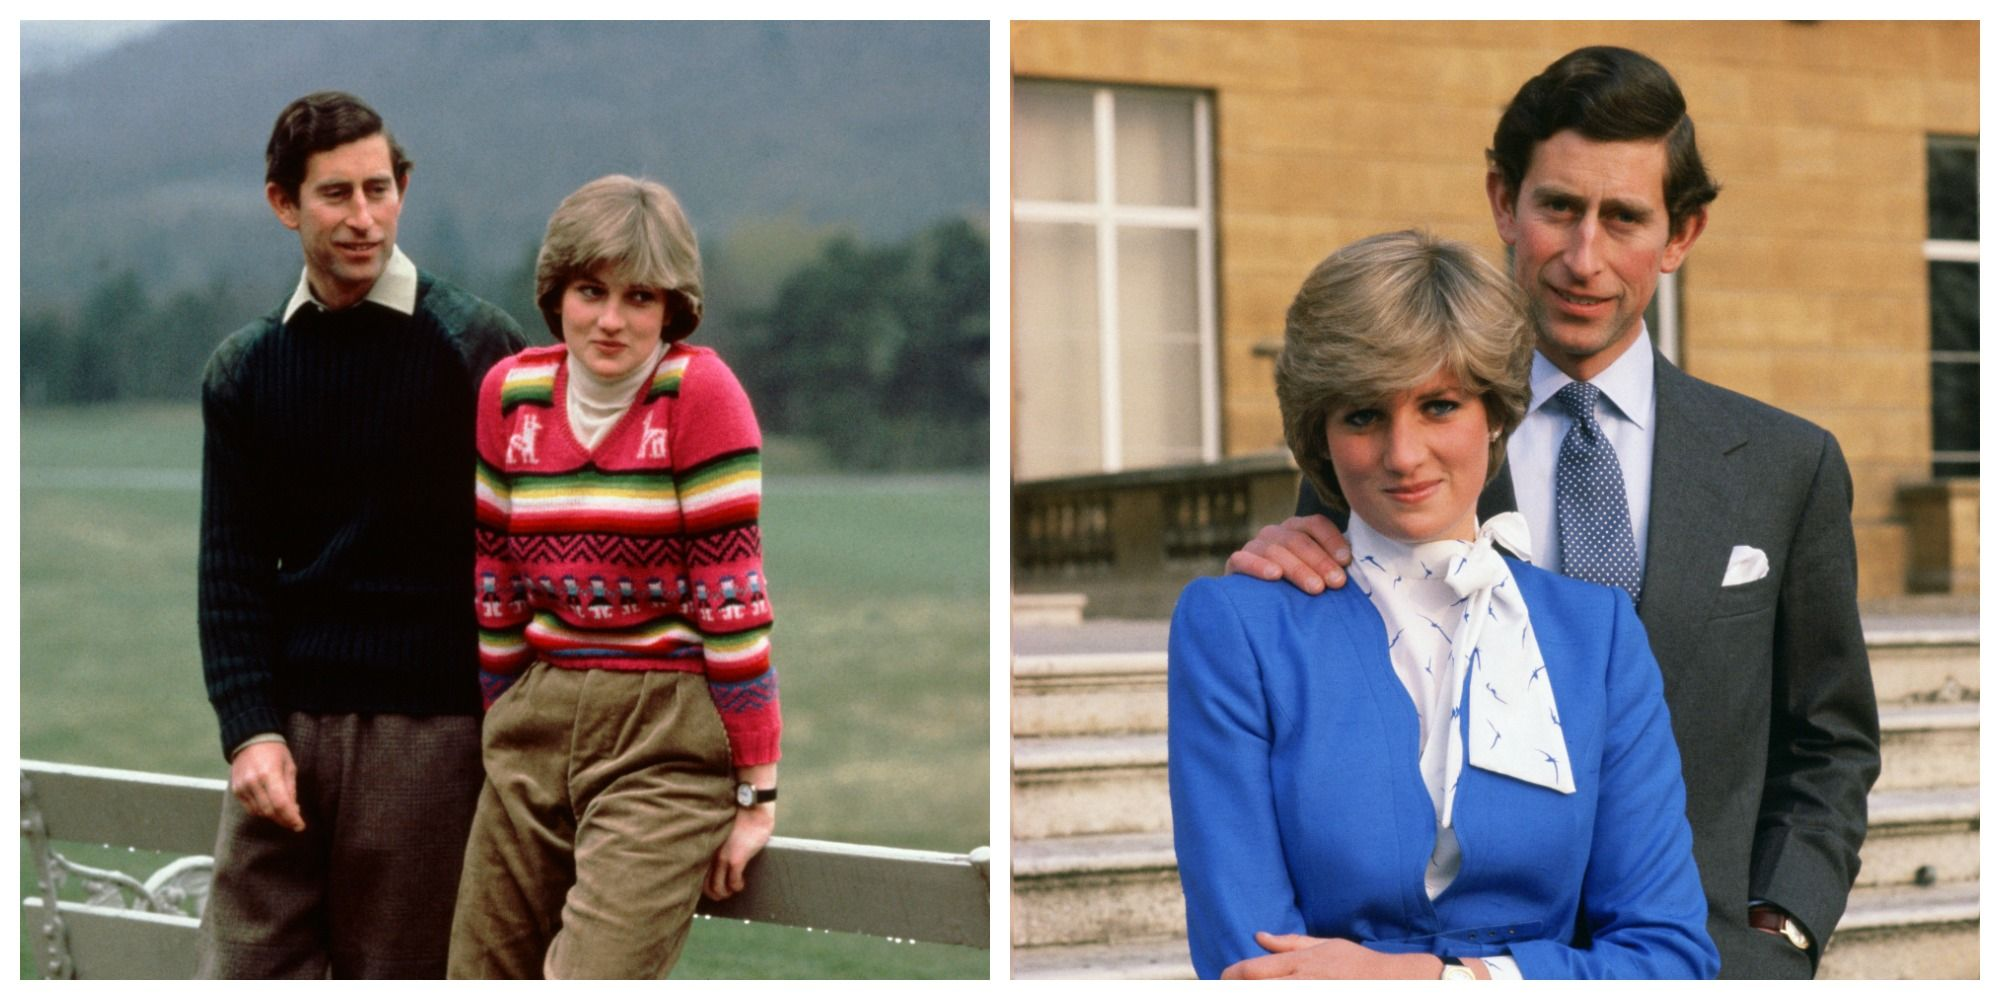 The Weird Thing You Never Noticed About All These Pictures Of Princess Diana And Prince Charles